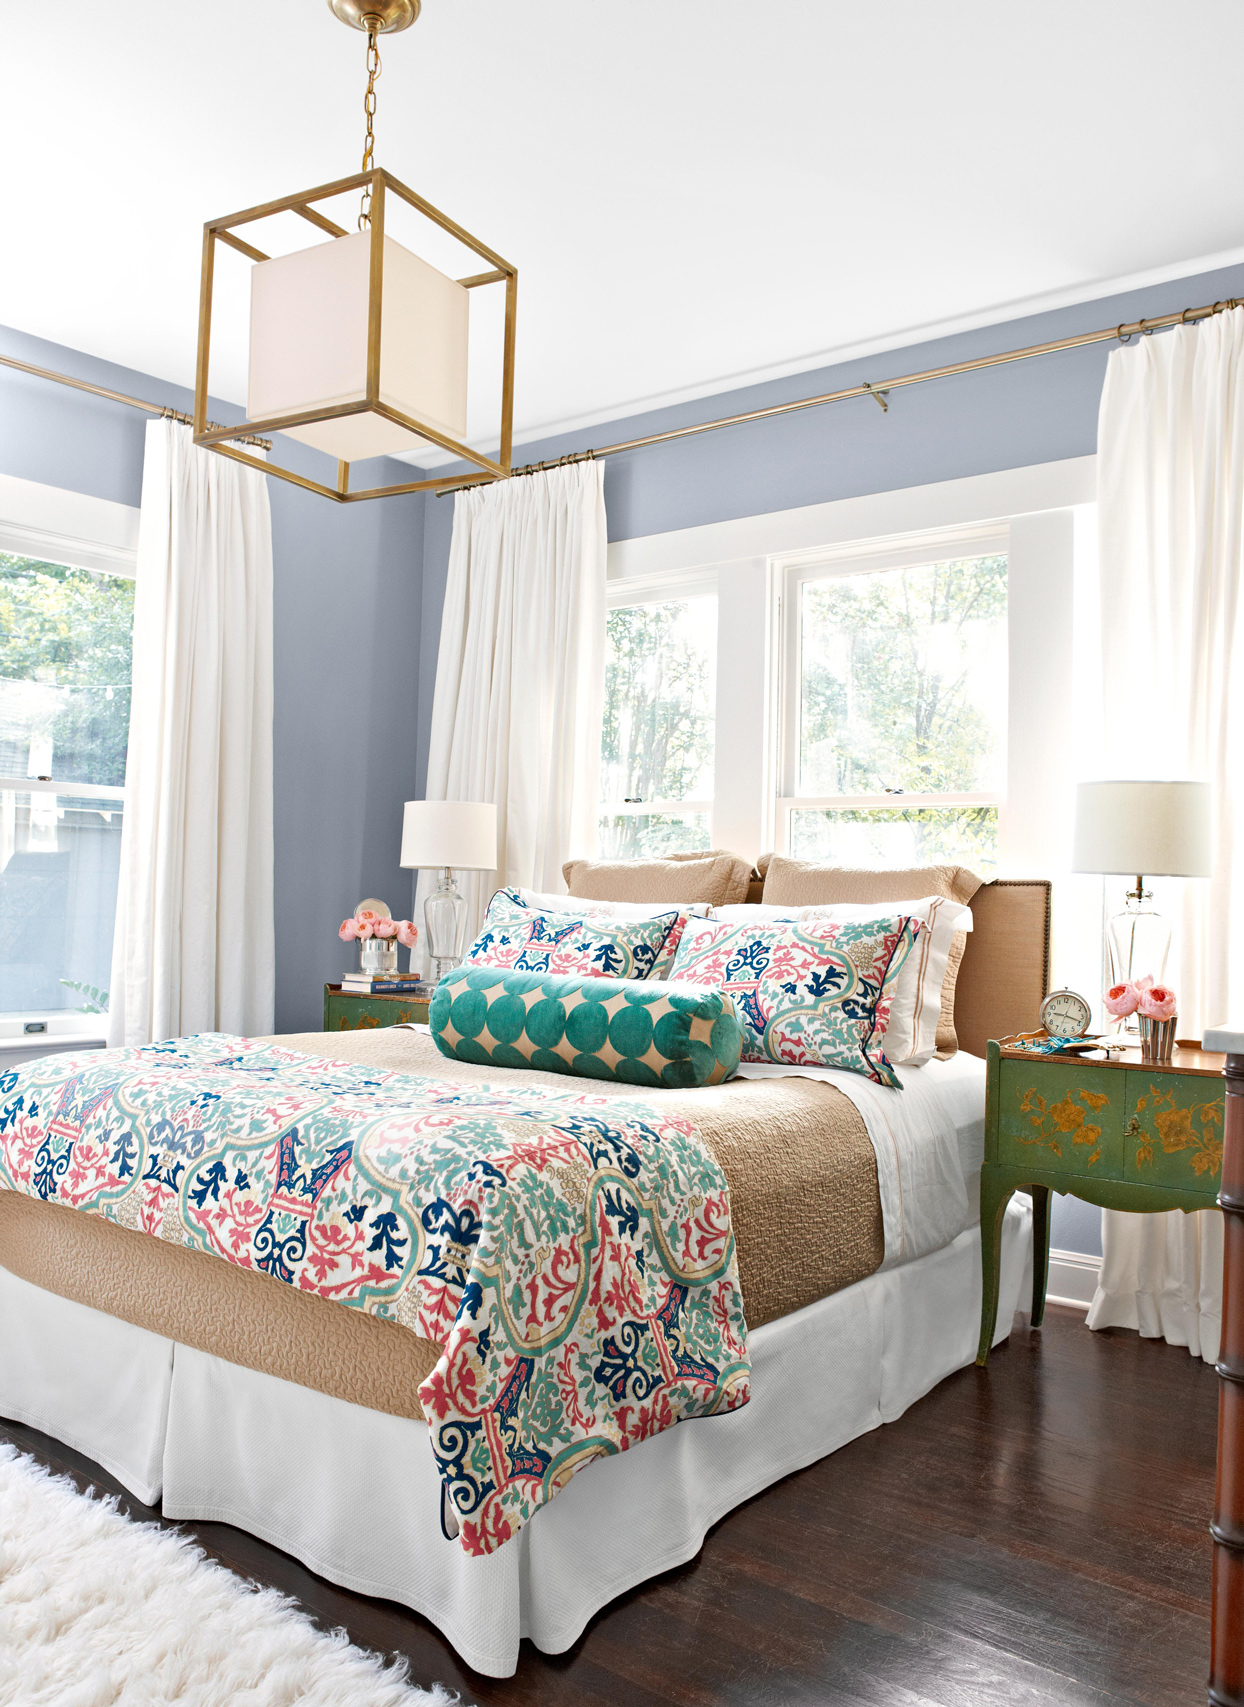 blue wall bedroom with square glass pendant decorative pattern bedding